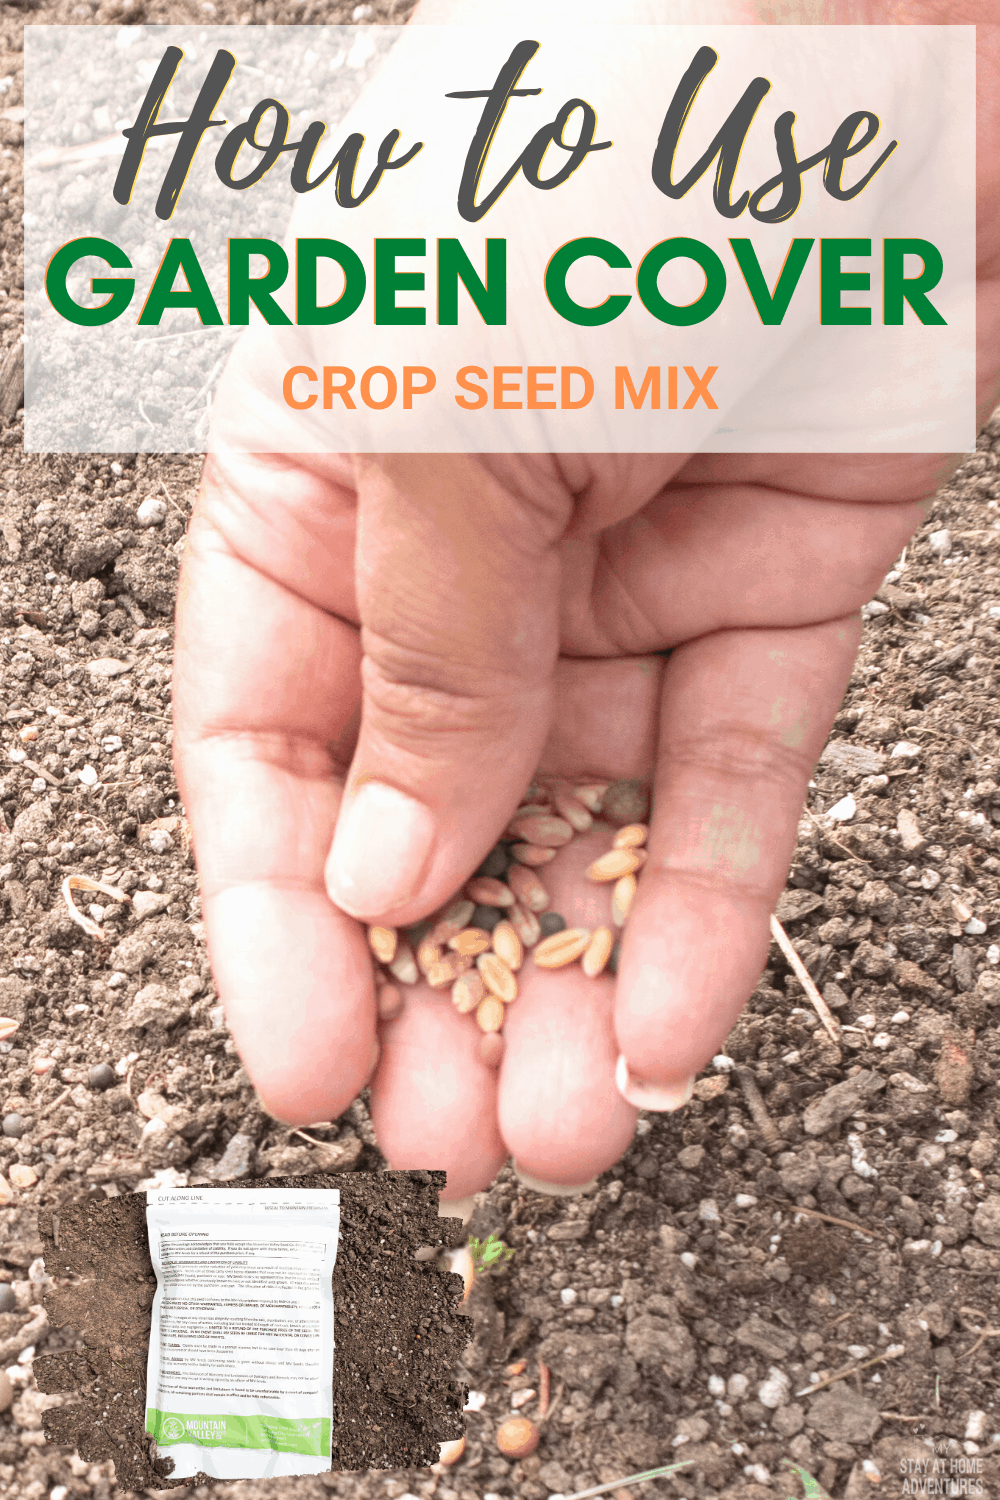 As you garden this season, learn all the benefits of using garden cover crop seeds—a natural way to improve your garden soil and so much more. #gardening #PlantingWithTLM #ad via @mystayathome